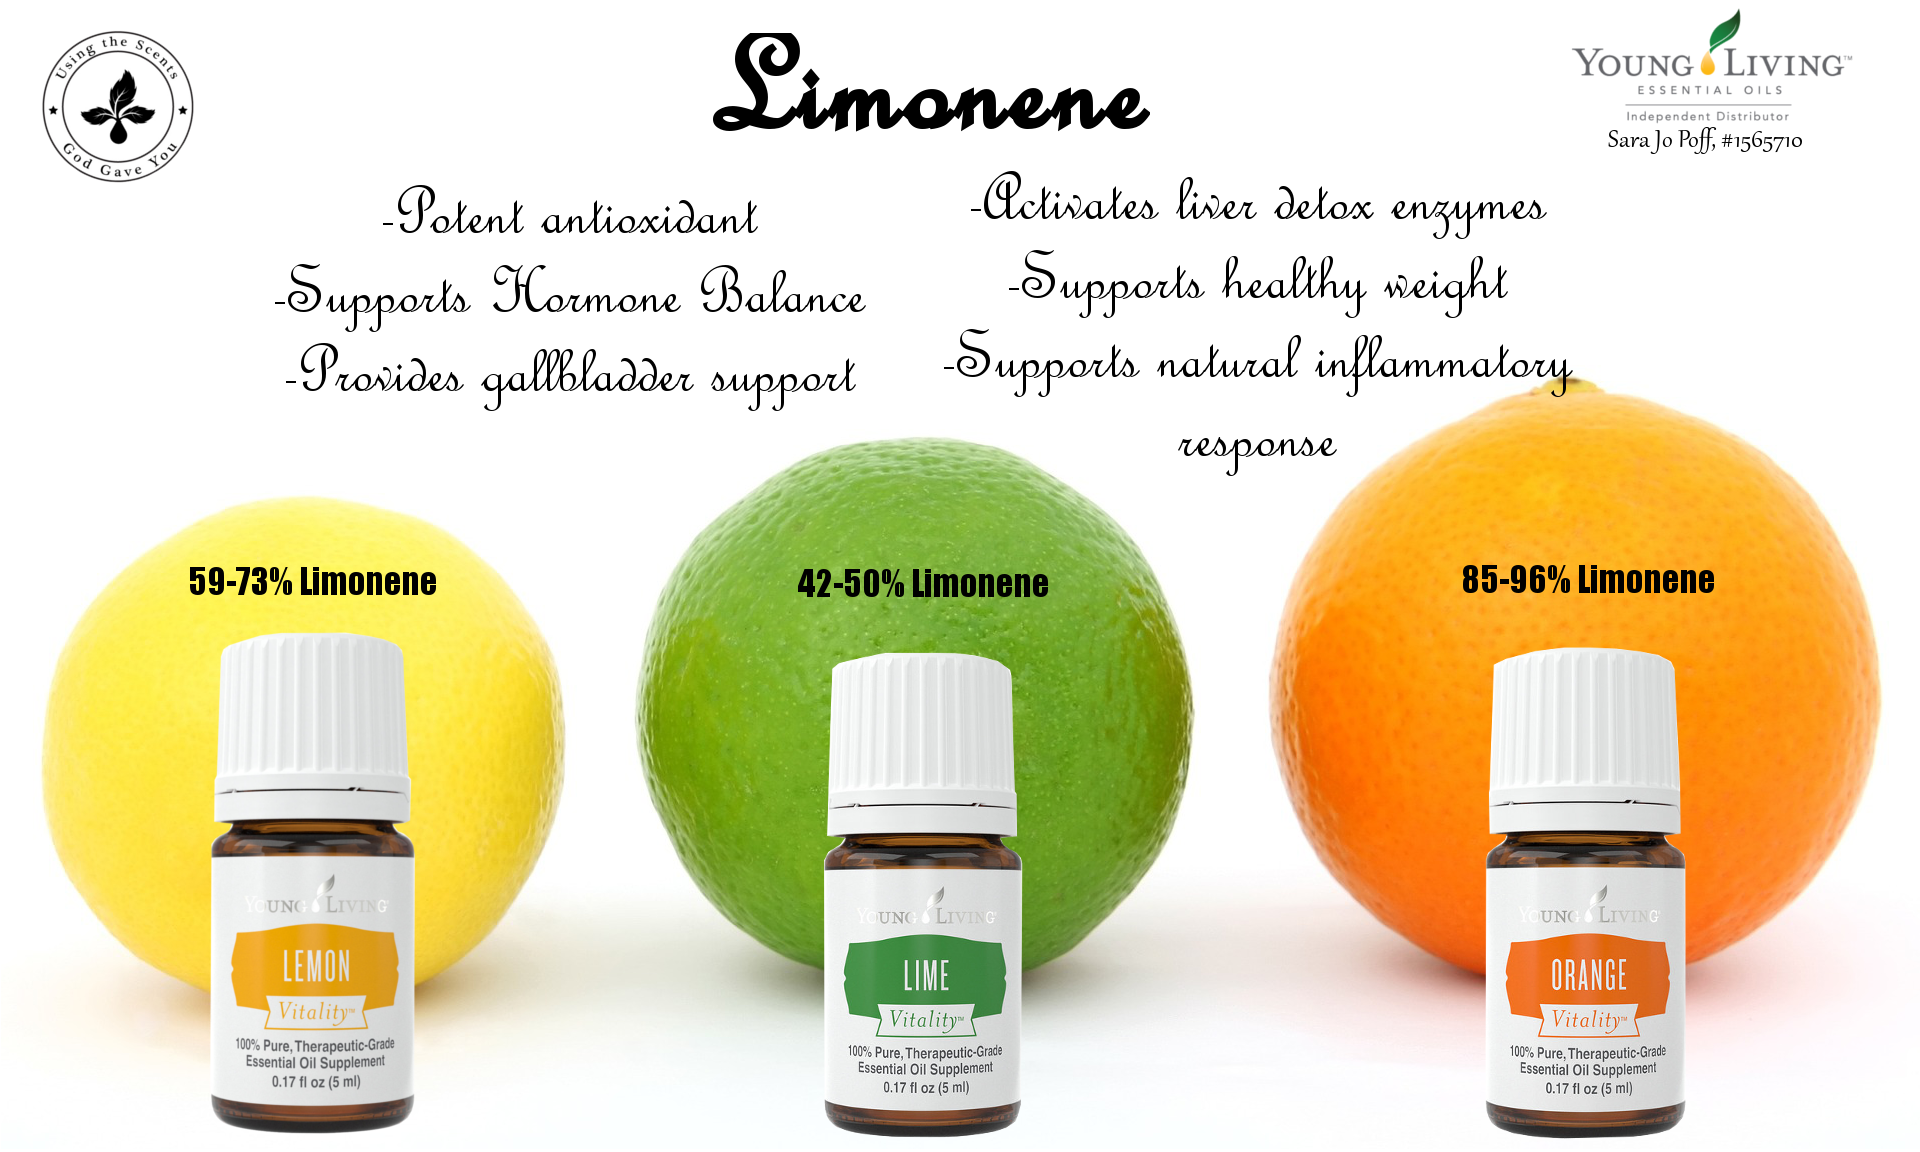 Limonene from YL Essential Oils